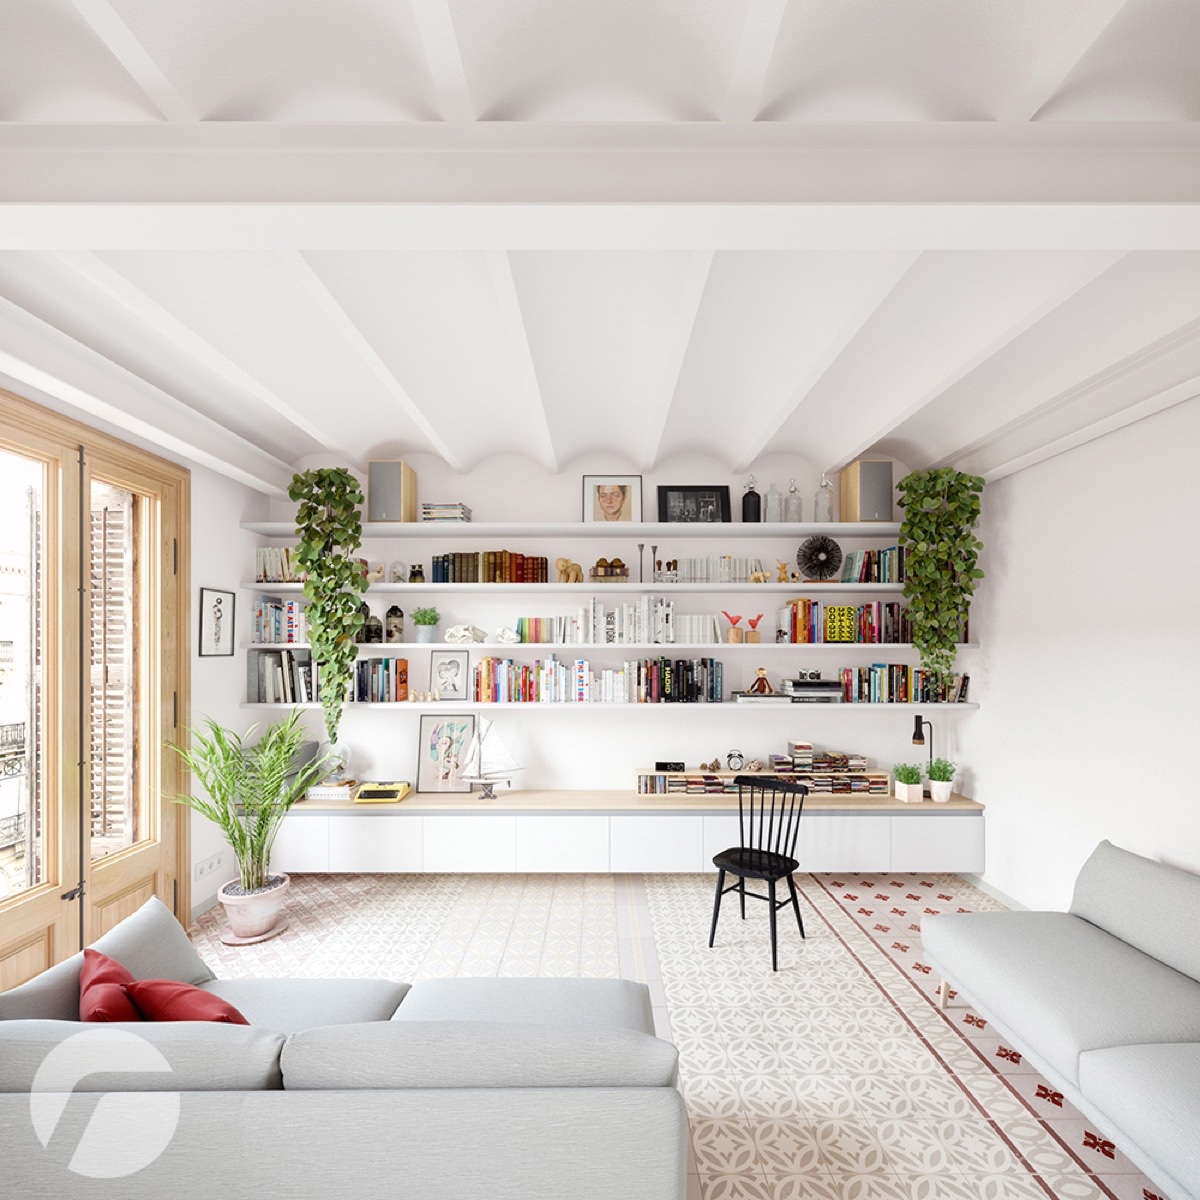 10 stunning apartments that show off the beauty of nordic interior design - Gorgeous home decoration inspiration ideas for you ...